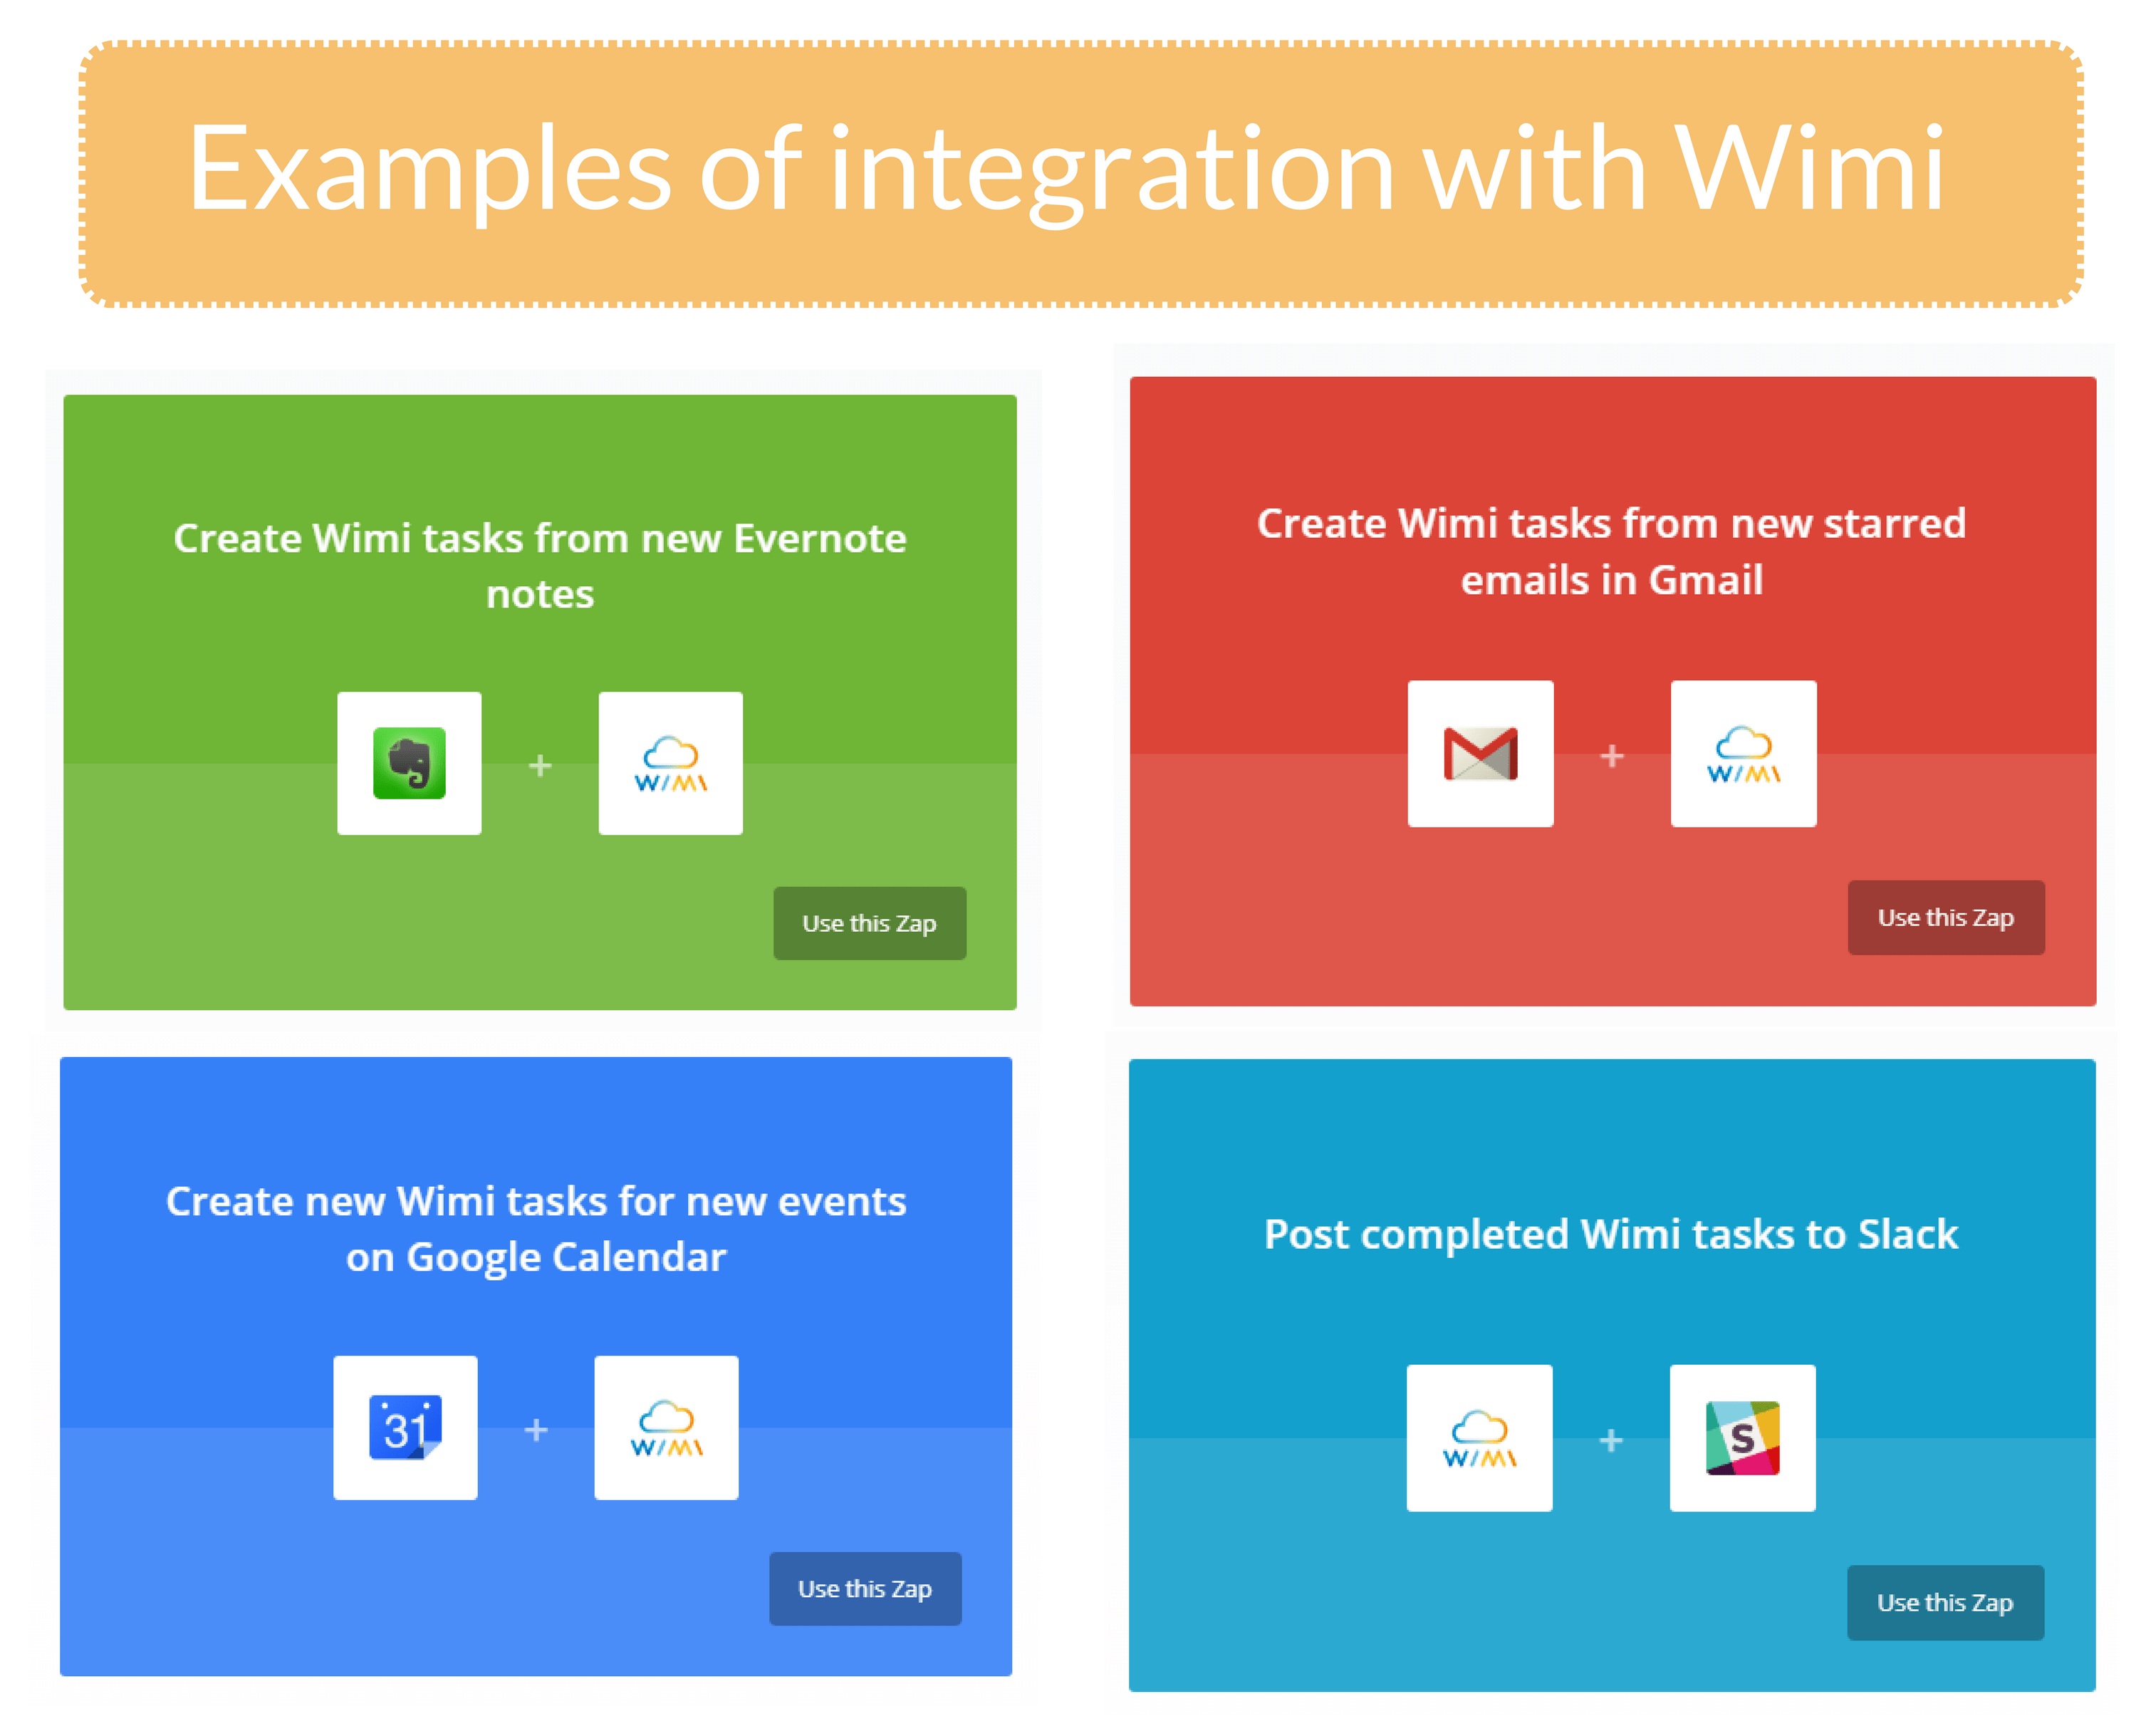 examples of integration with wimi